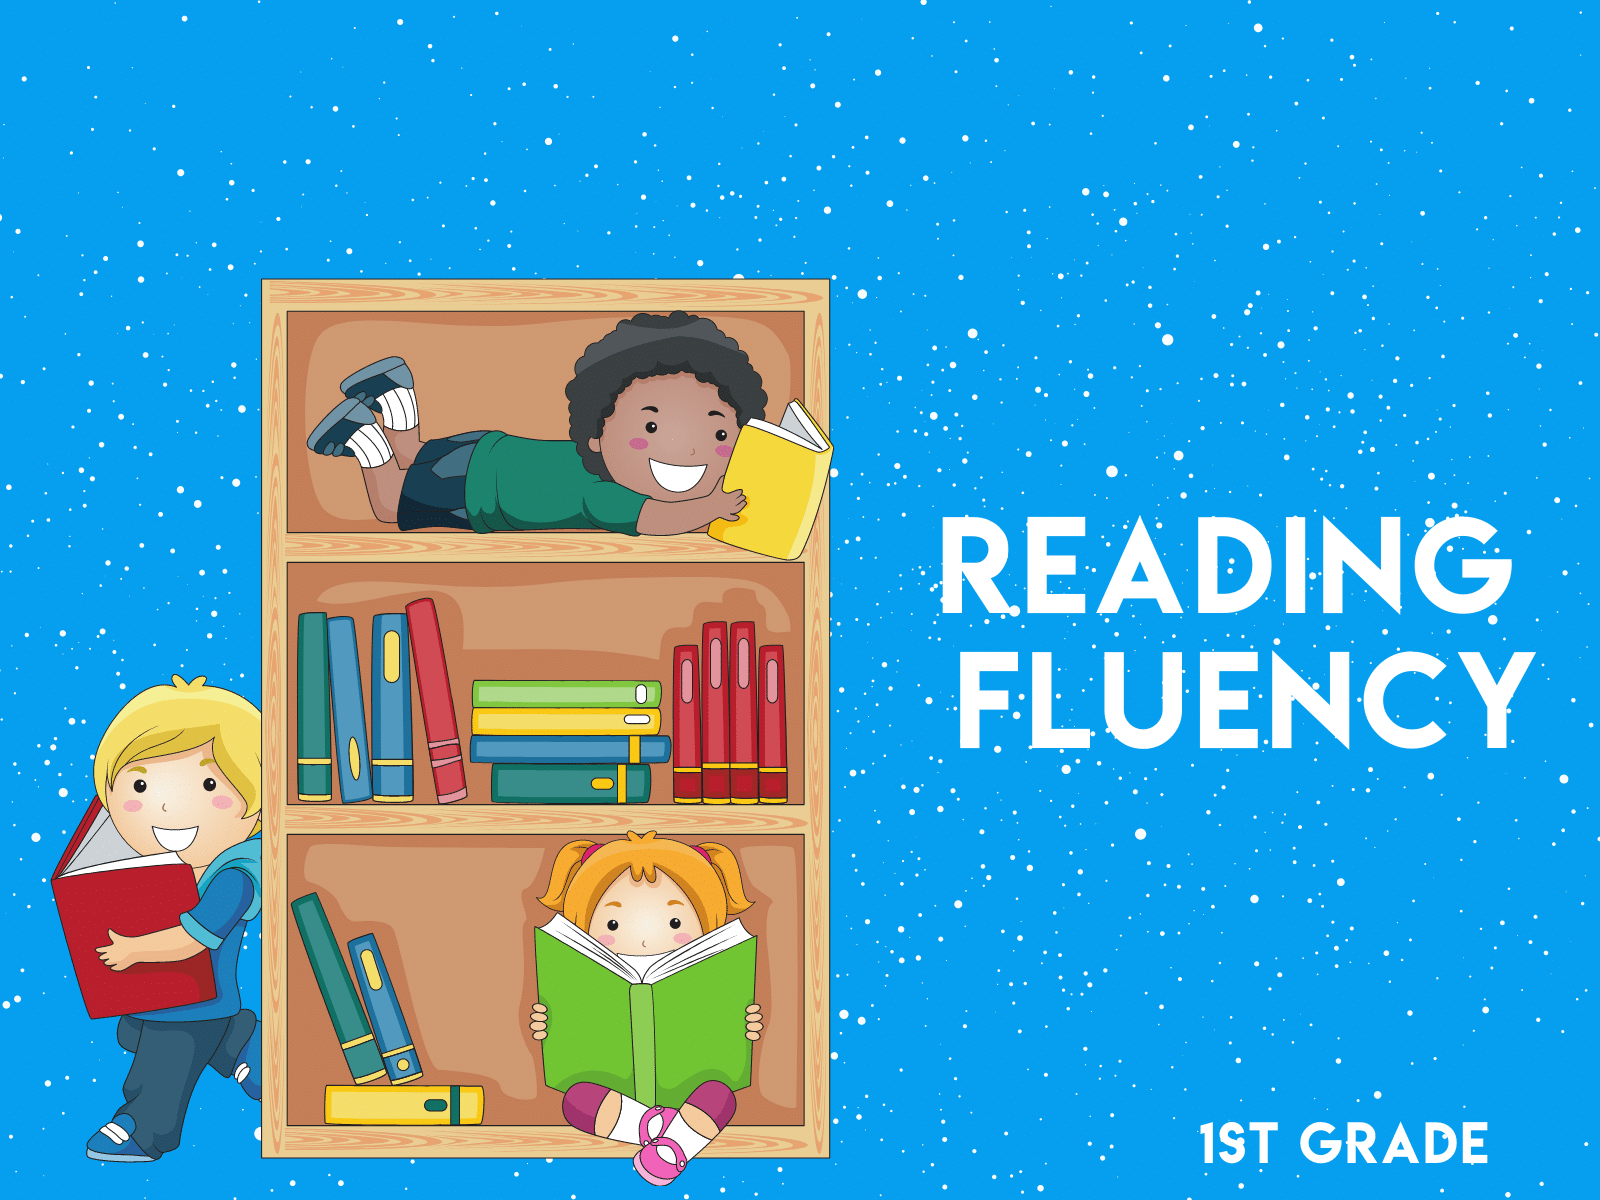 1st grade reading fluency activity for CVCe and long E words, sight words, and fluency passages.